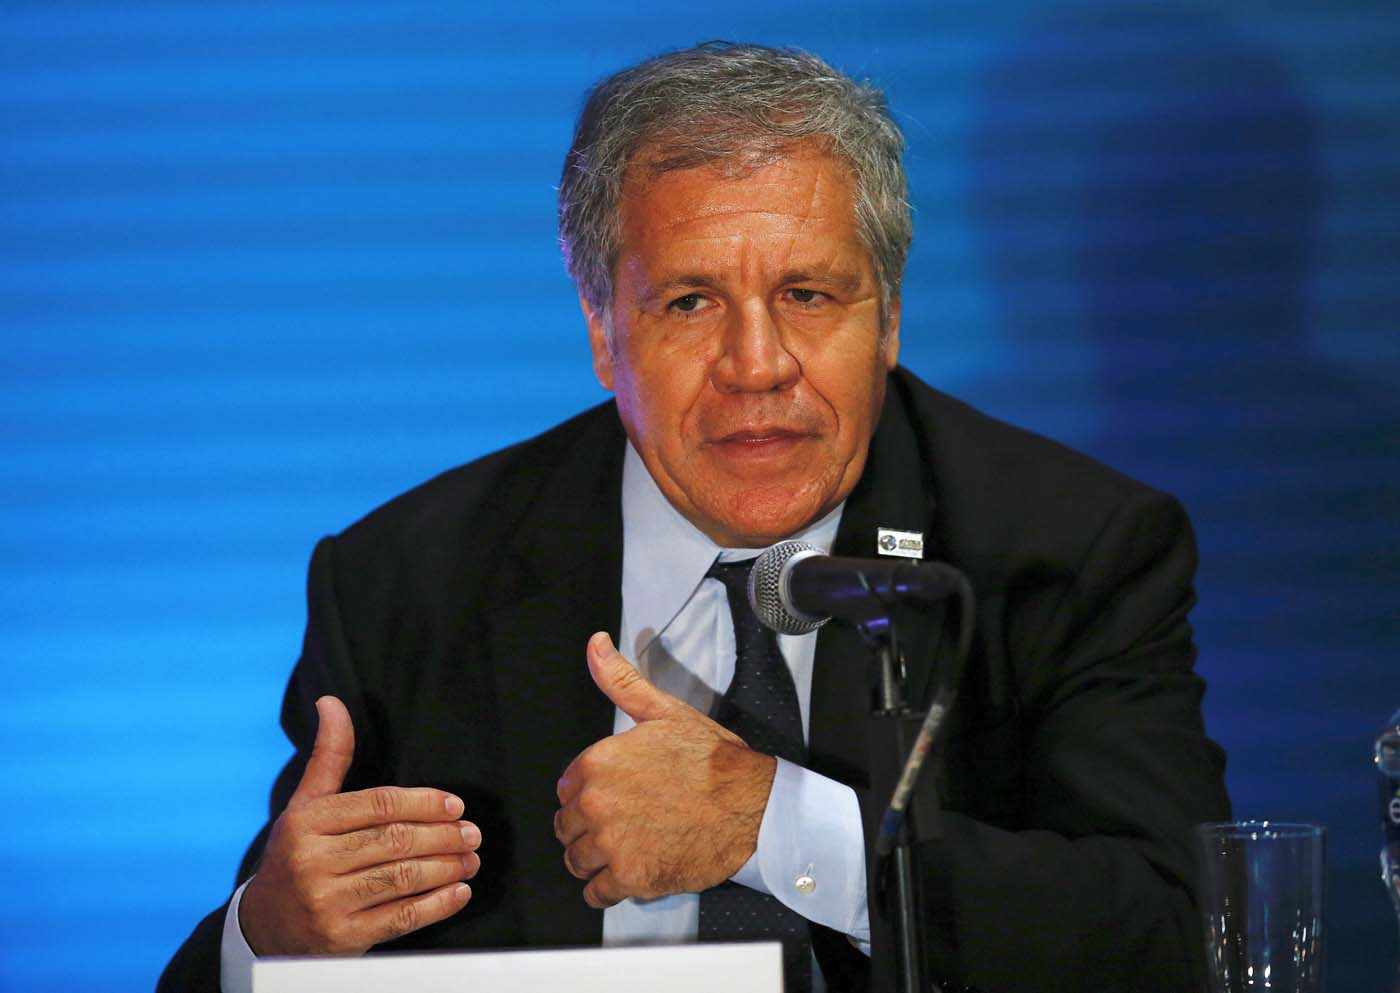 Organization of American States (OAS) Secretary General Luis Almagro attends a news conference ahead of the OAS 47th General Assembly in Cancun, Mexico June 19, 2017. REUTERS/Carlos Jasso